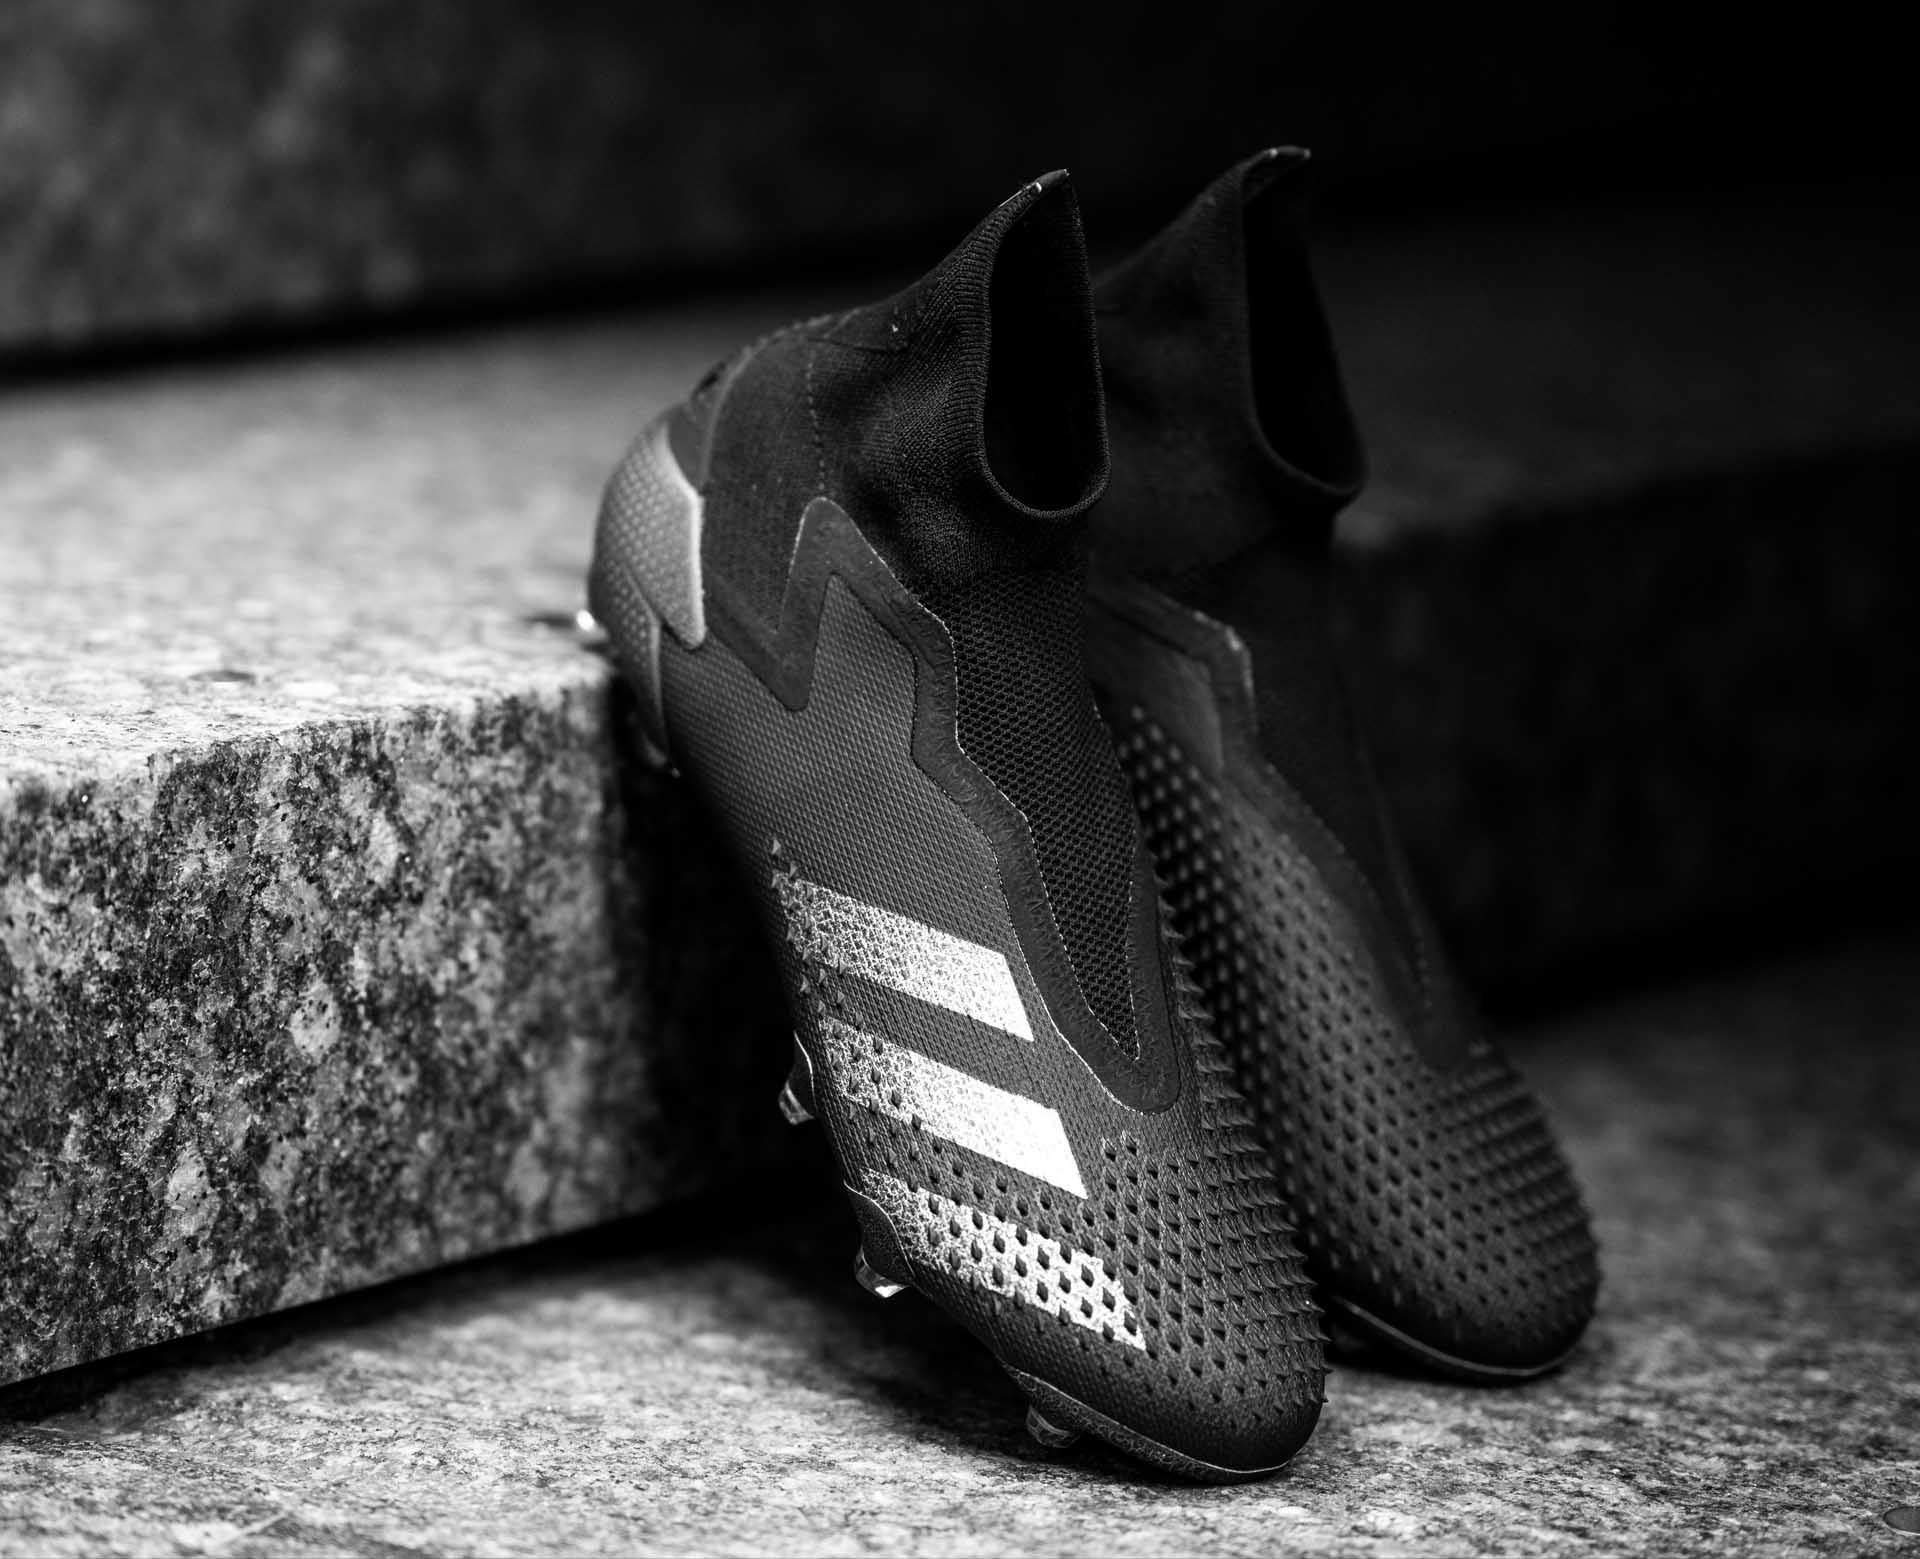 Adidas Predator Blackouts - Shadowbeast Pack